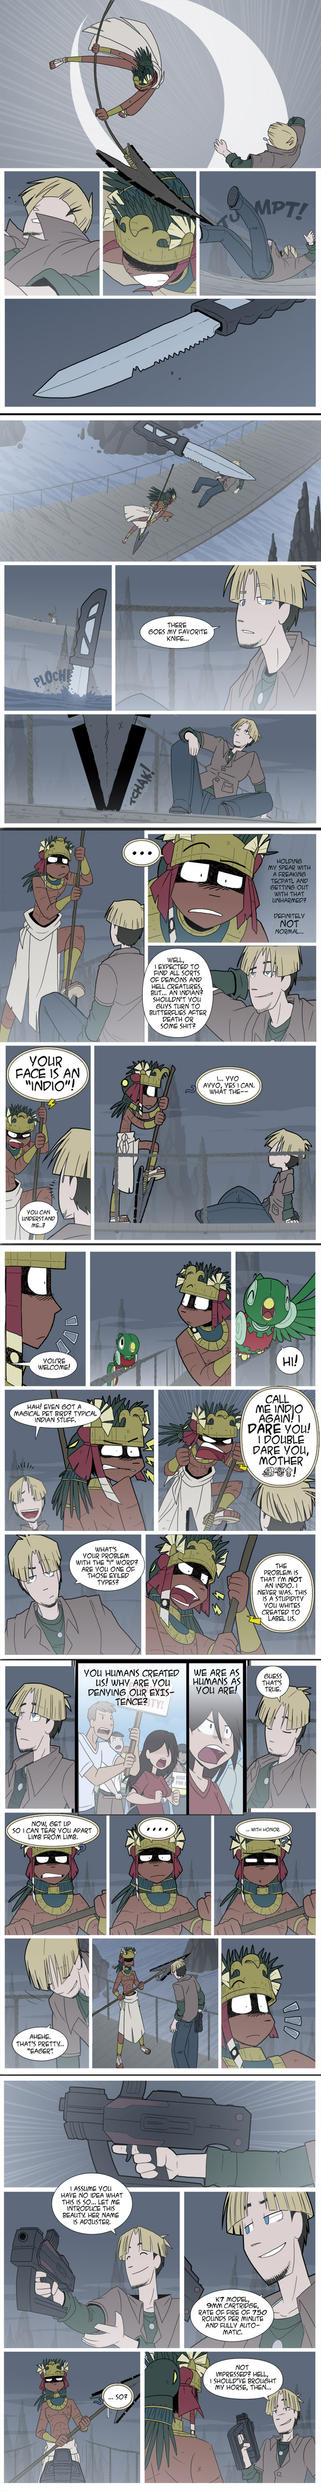 BA Round 1-Page 2 by Tickity-Tock